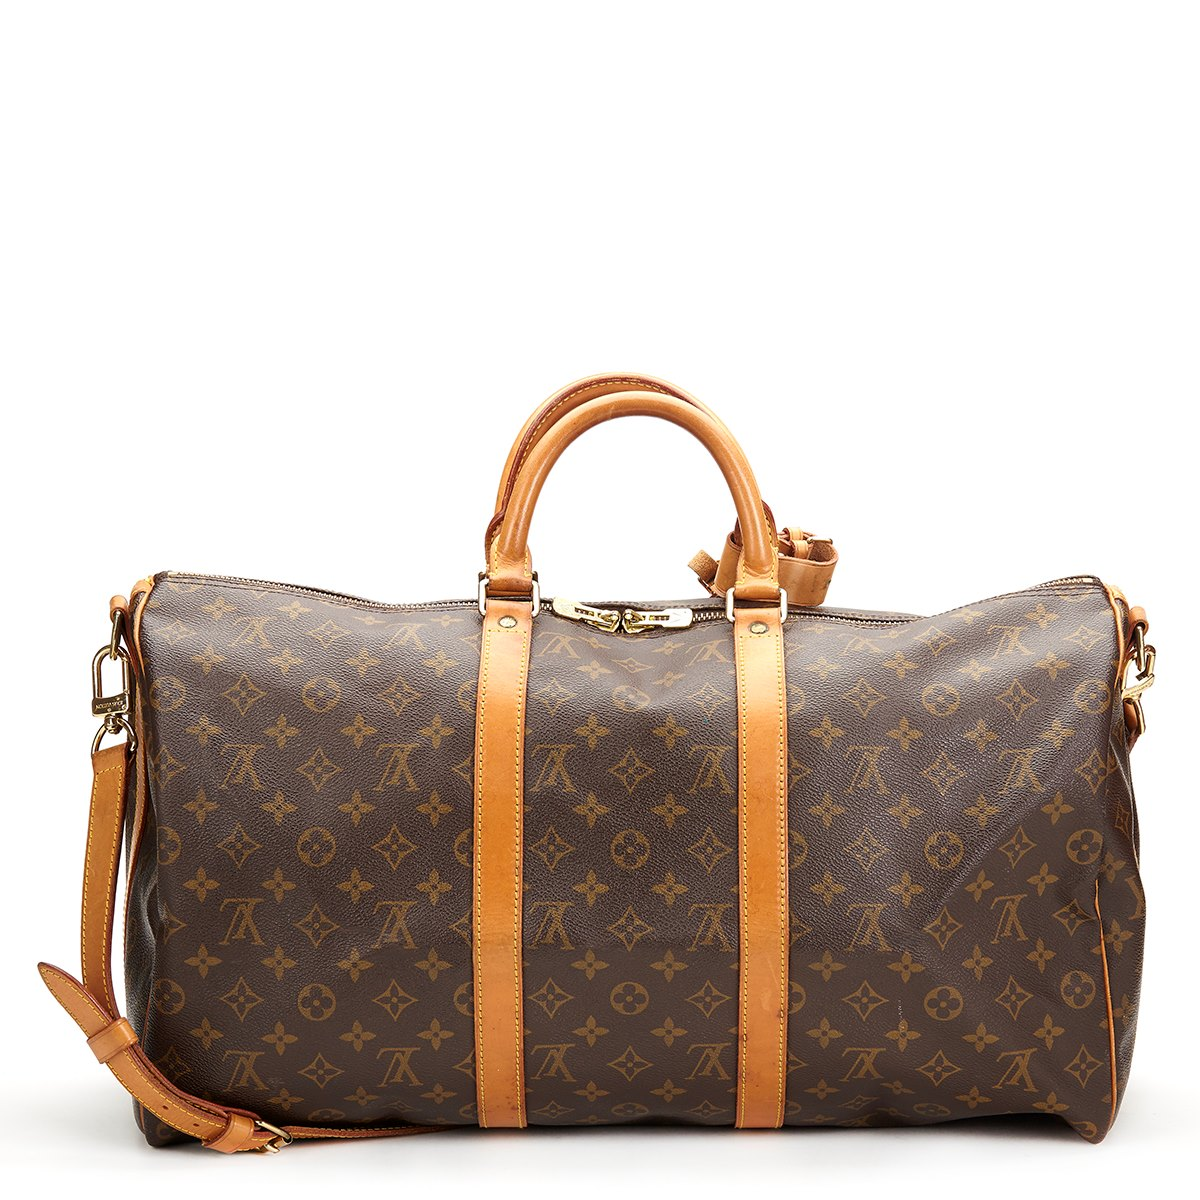 louis vuitton keepall bandouliere 50 1993 hb320 second hand handbags. Black Bedroom Furniture Sets. Home Design Ideas